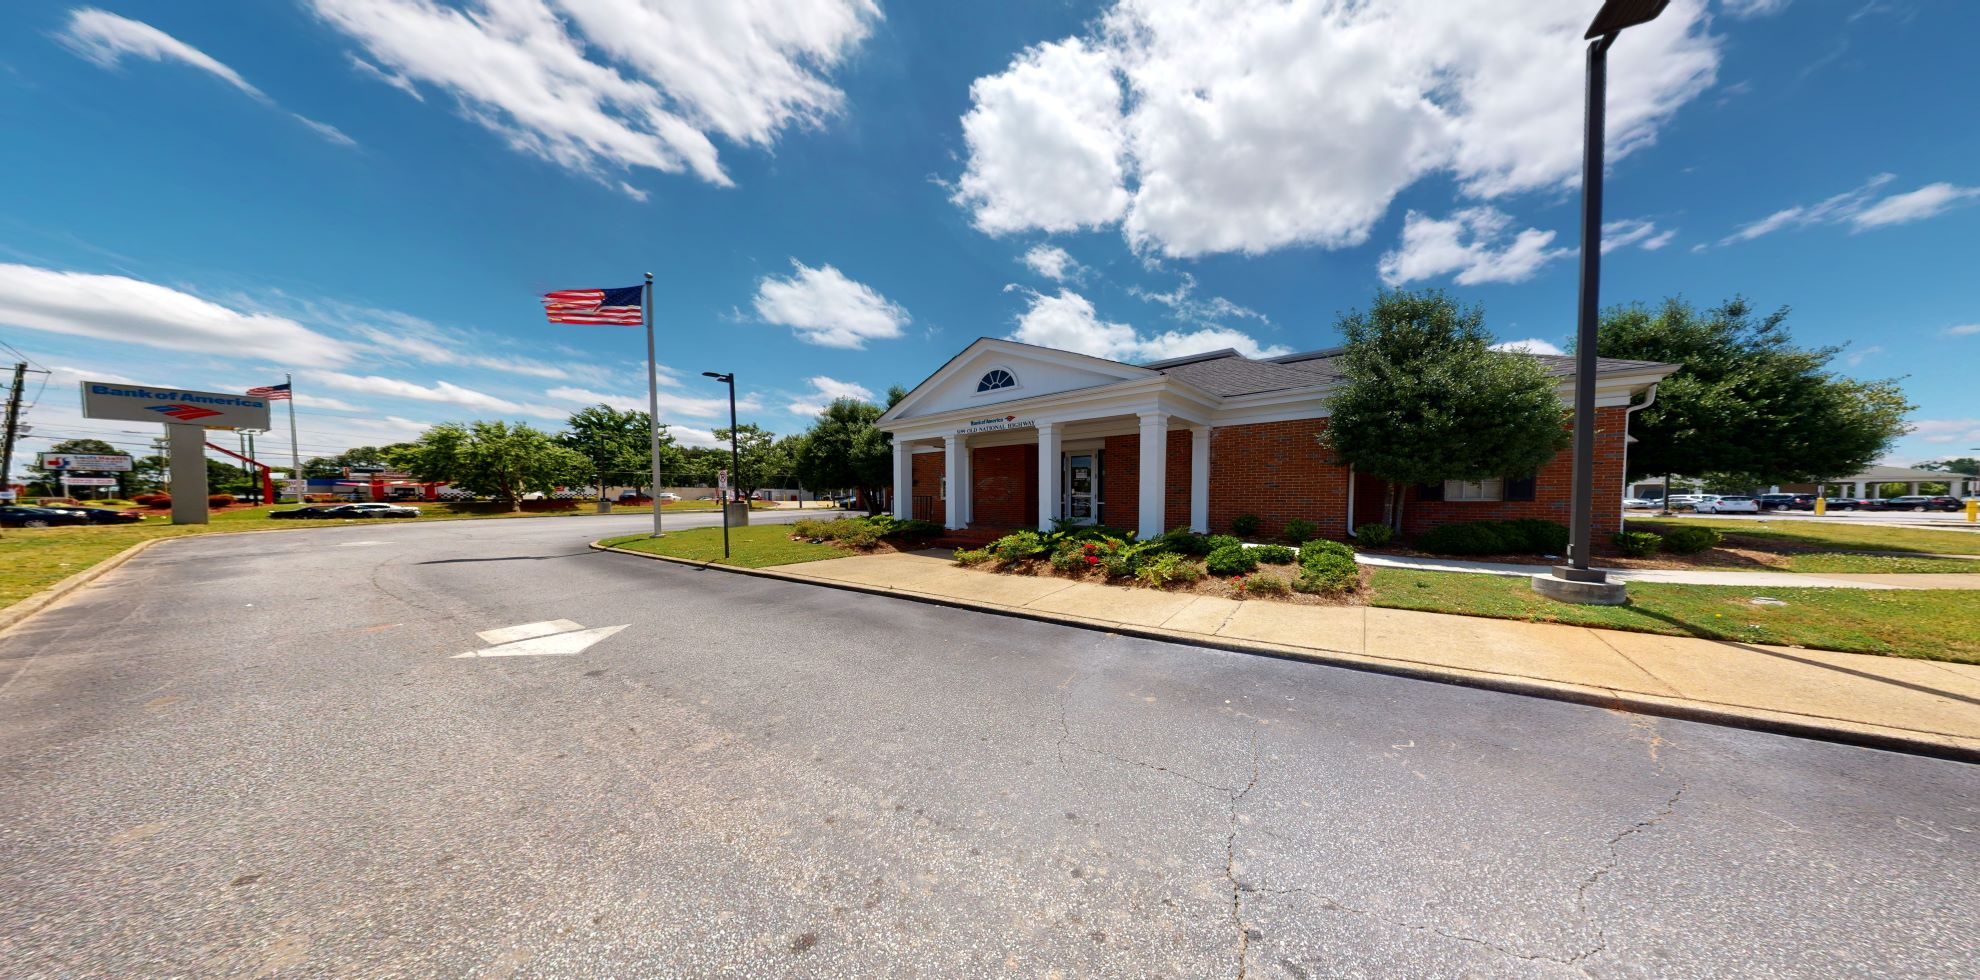 Bank of America financial center with drive-thru ATM and teller | 5199 Old National Hwy, College Park, GA 30349